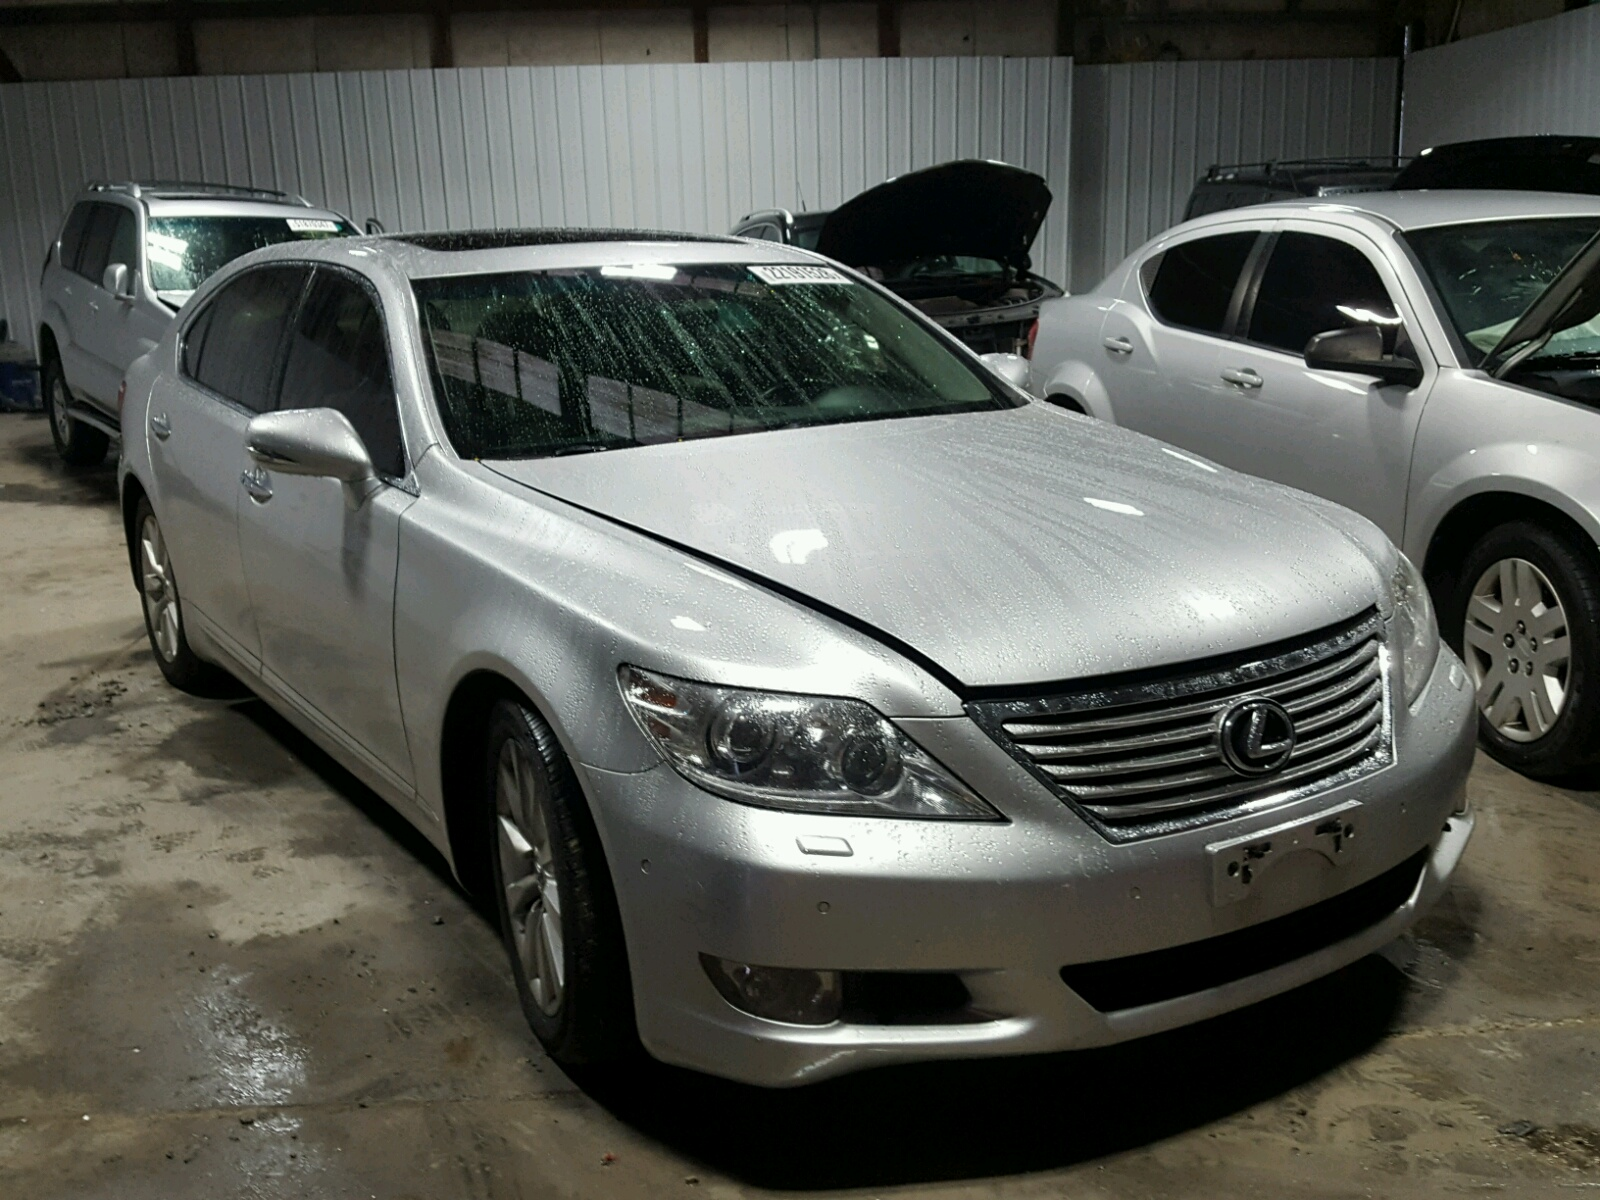 auto auction ended on vin jthcl5ef0a5008357 2010 lexus ls460 awd in pa pittsburgh north. Black Bedroom Furniture Sets. Home Design Ideas